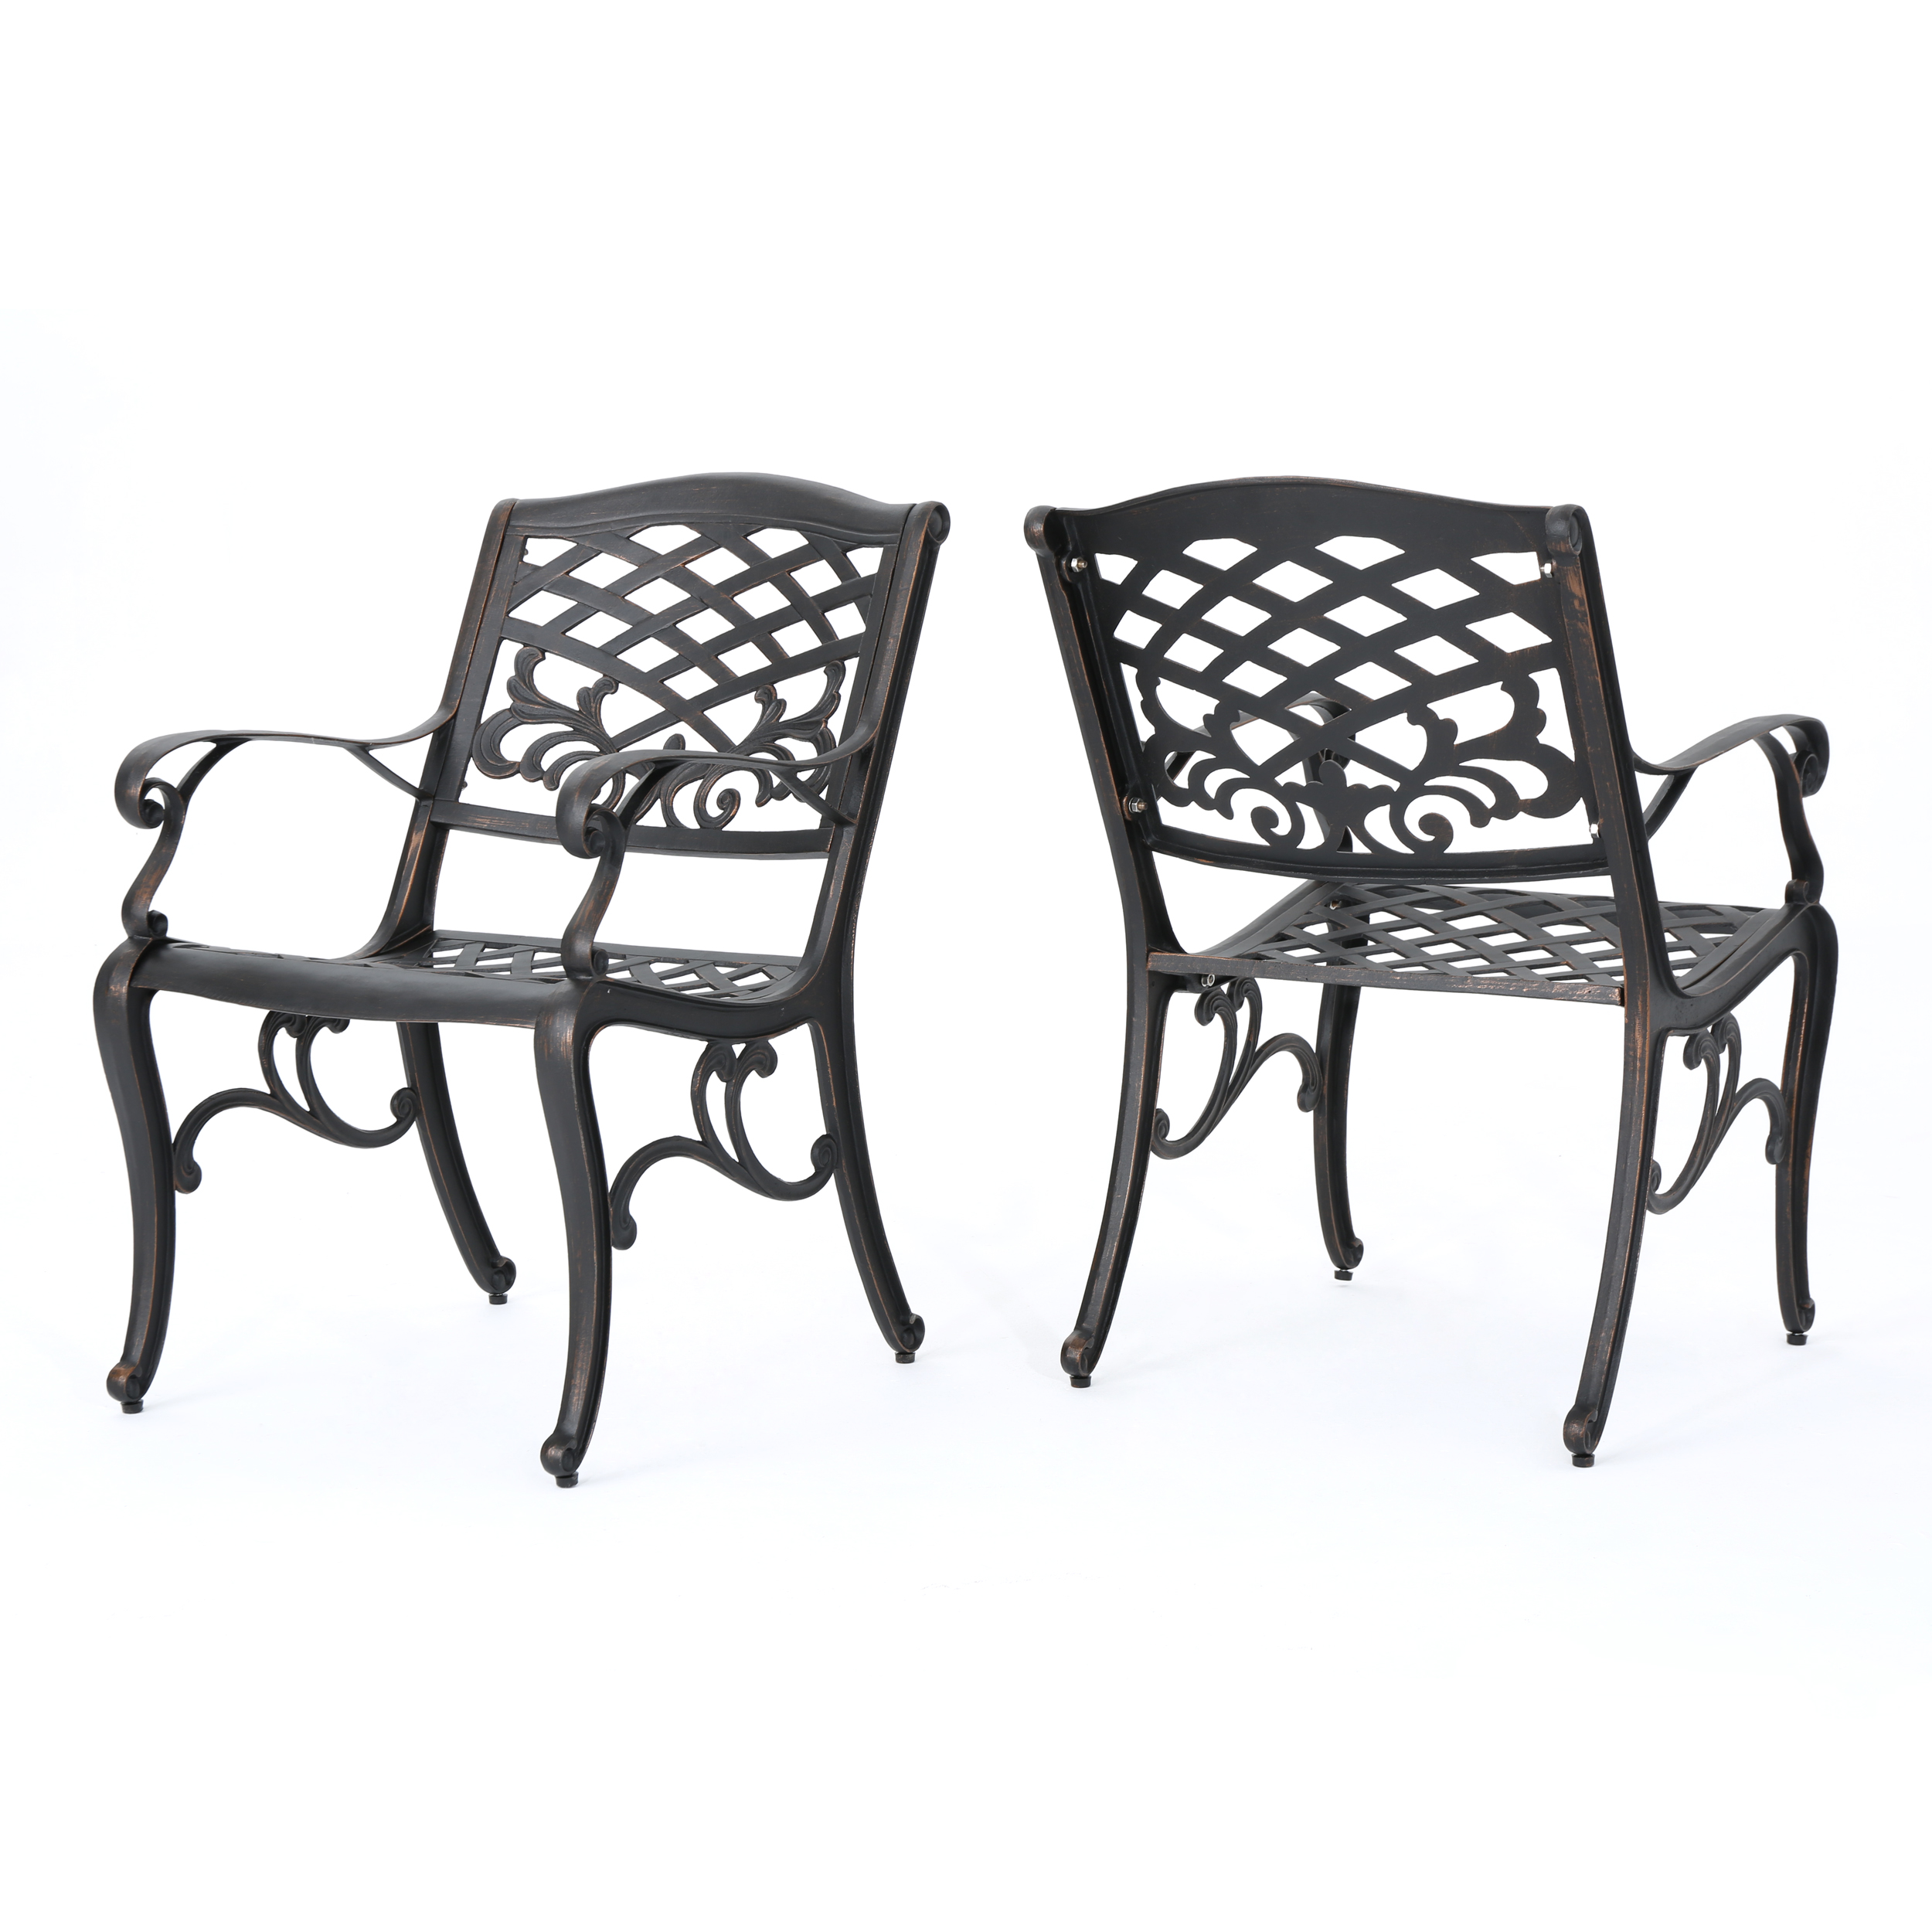 Myrtle Beach Outdoor Aluminum Dining Chairs, Set of 2, Shiny Copper